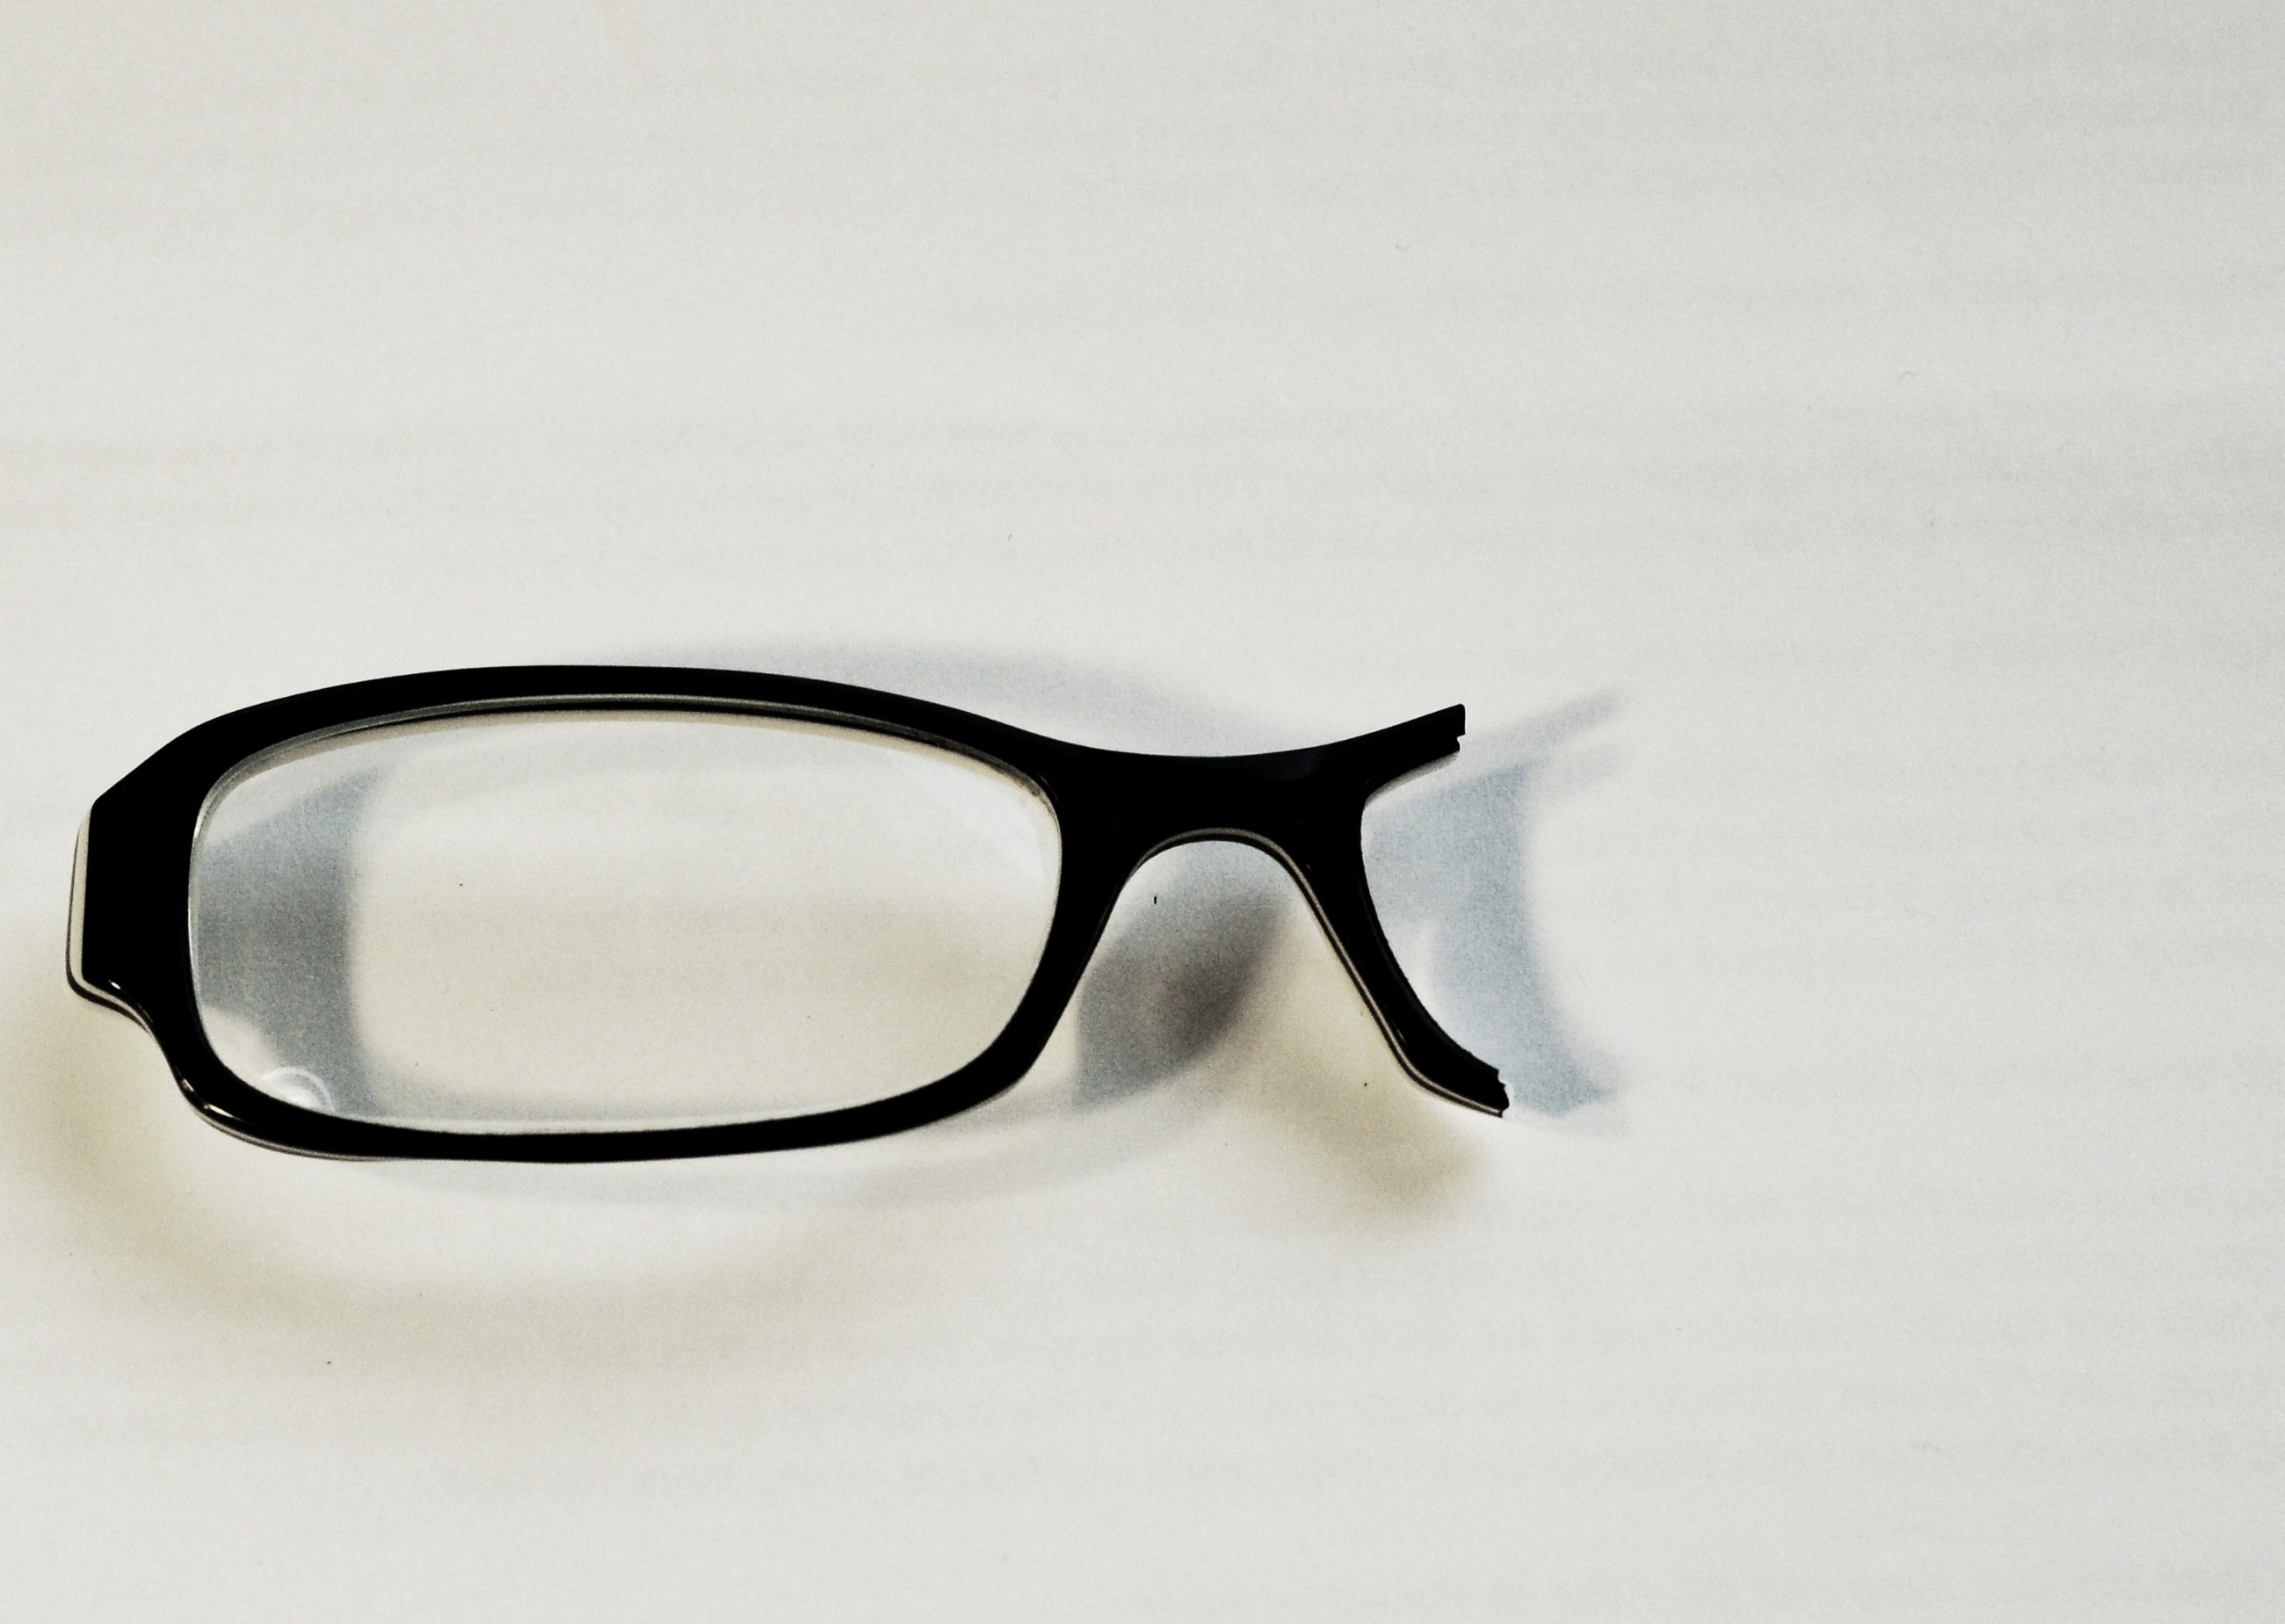 6 Reasons Why Buying Cheap Glasses Online May Be the Worst Deal Ever 08a51375ed